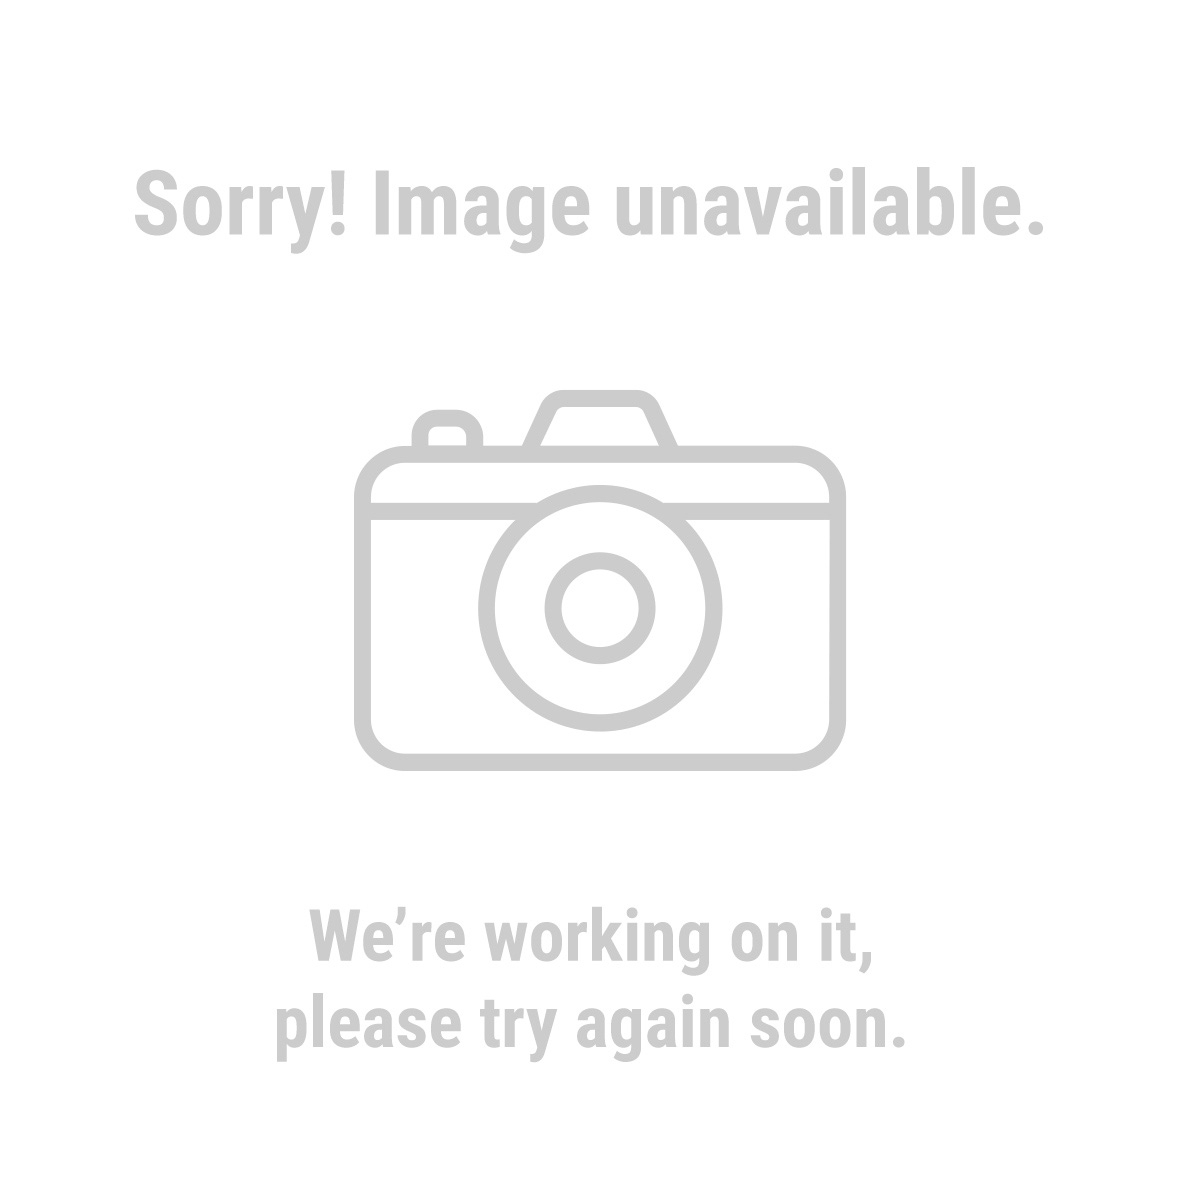 Self Centering Dowel Wood Jointing Drilling Doweling Drill Hole Dowling Jig Tool | eBay